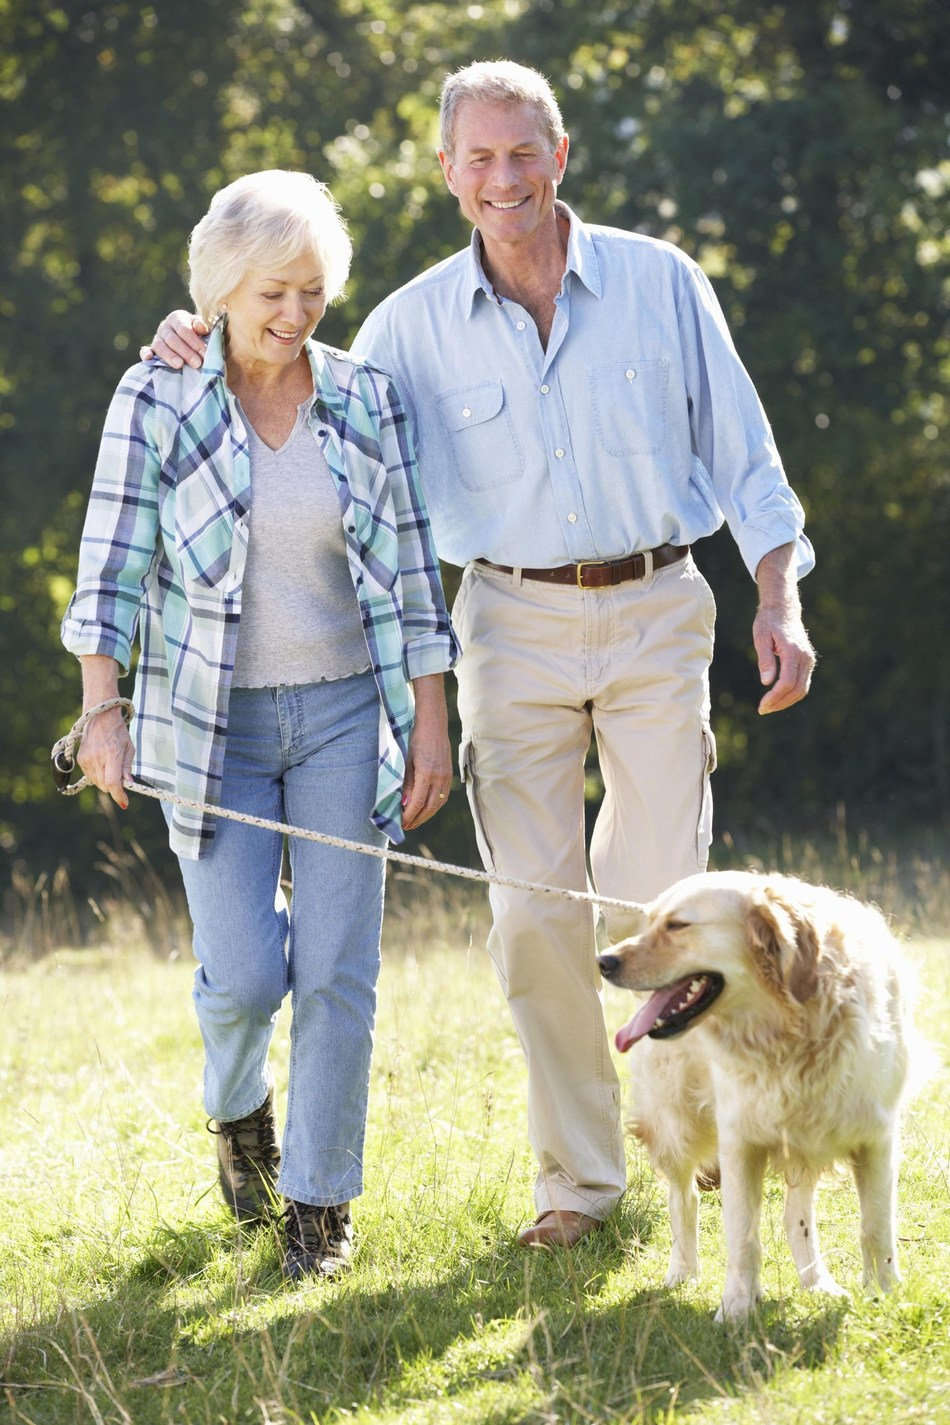 Adults aged 65 and over walk more if they own a dog (PRNewsfoto/Mars Petcare)